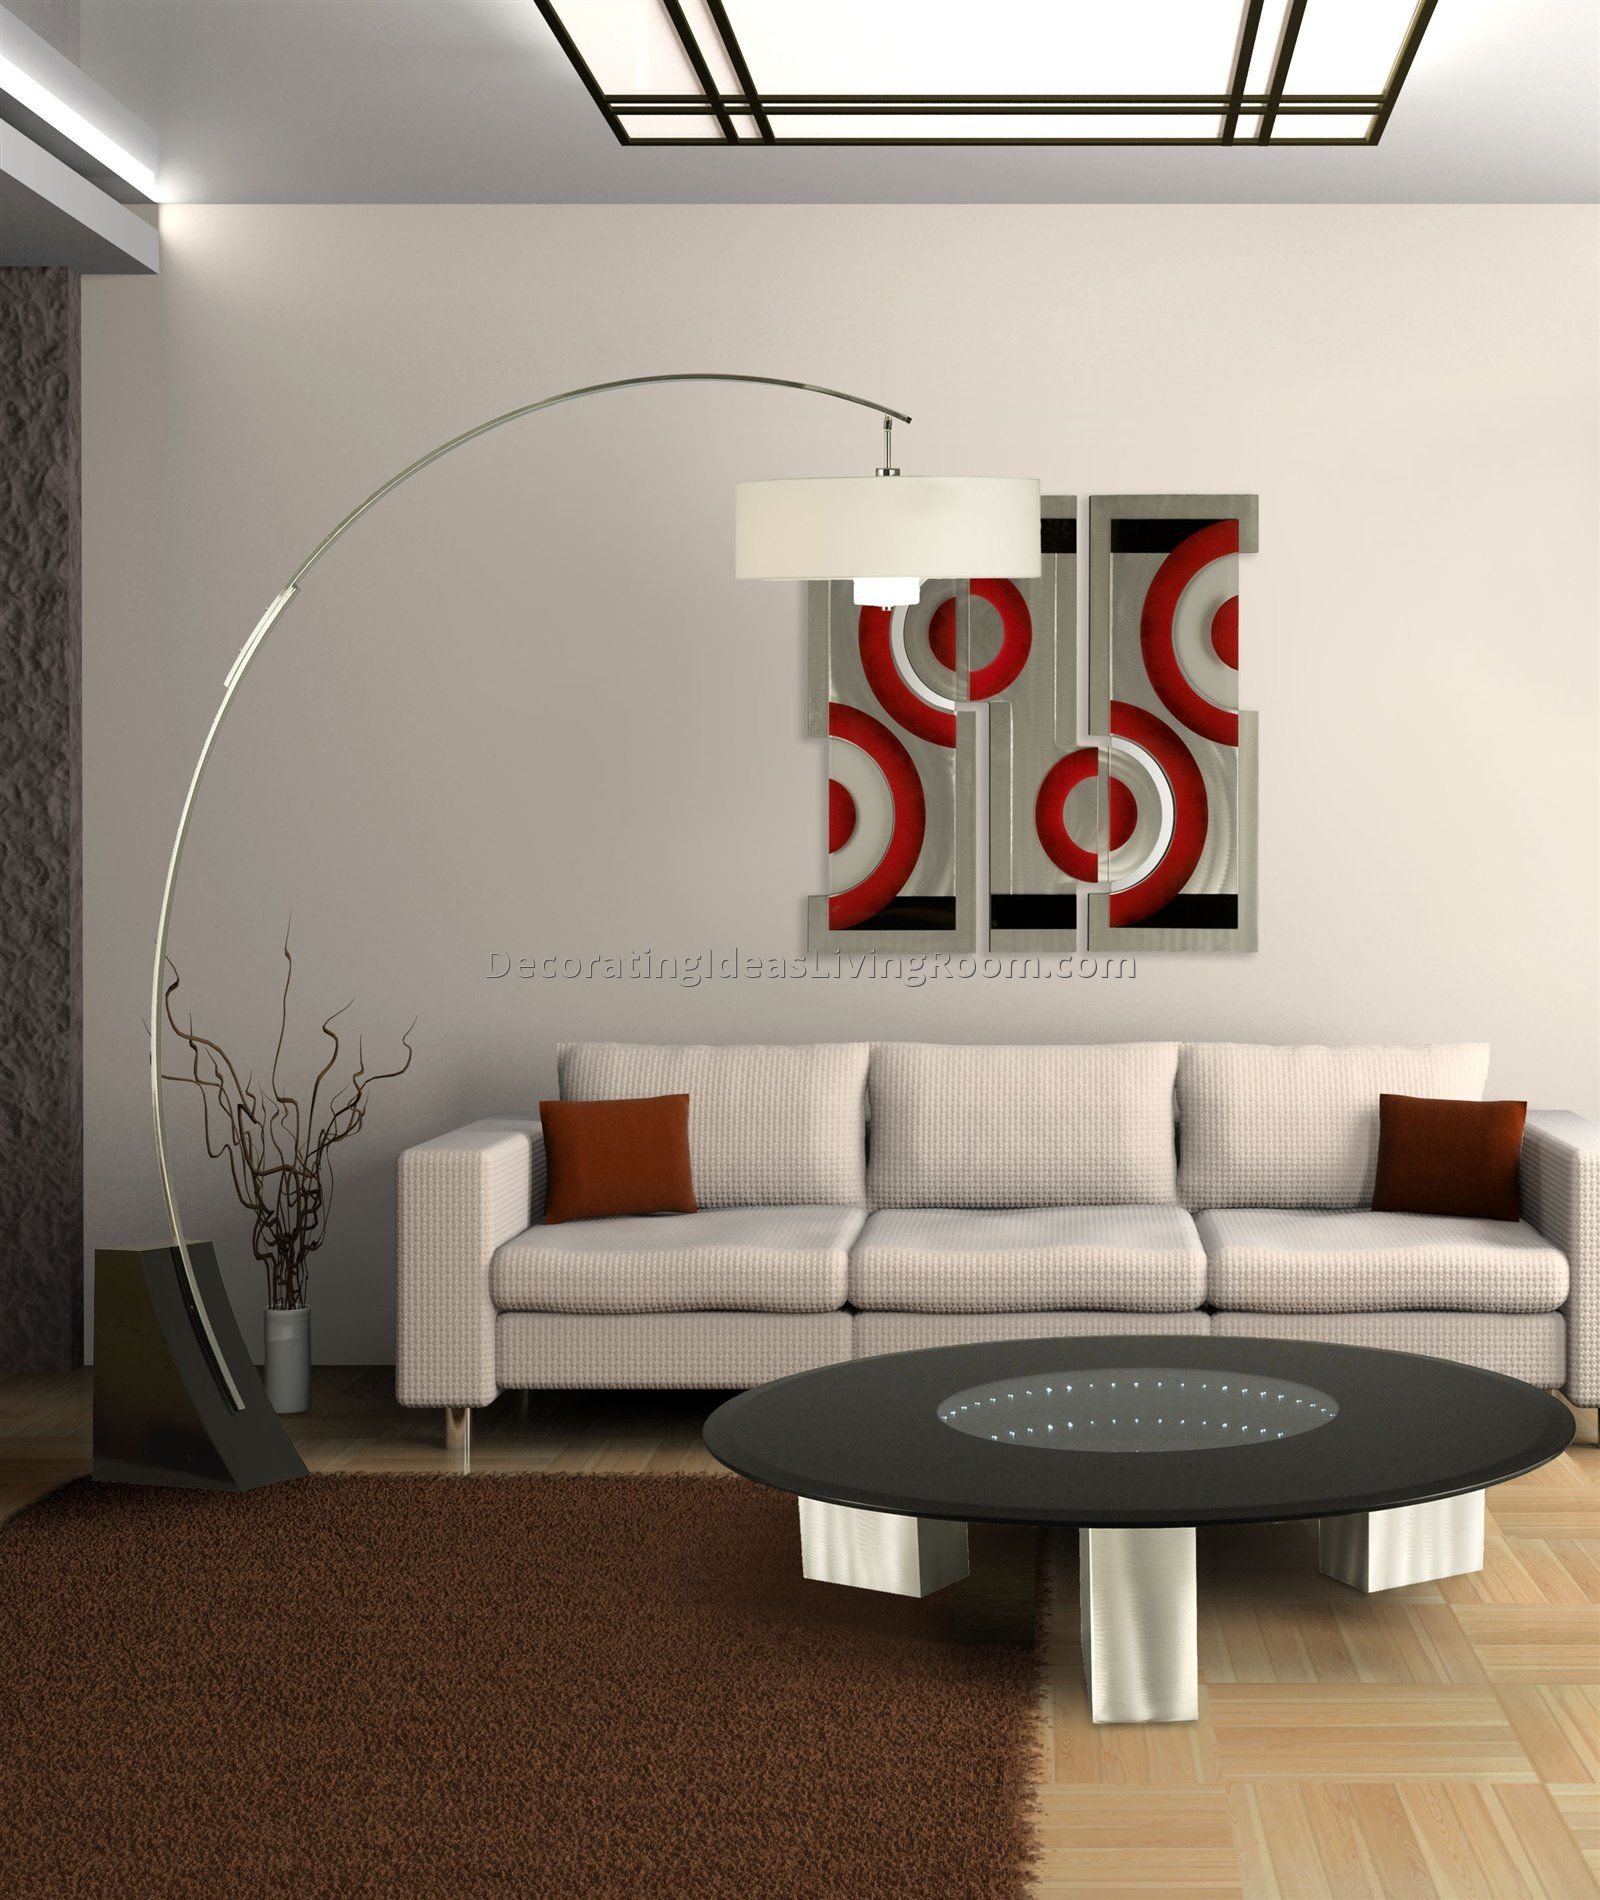 20 Modern Floor Lamps Design Ideas With Pictures HGNVCOM